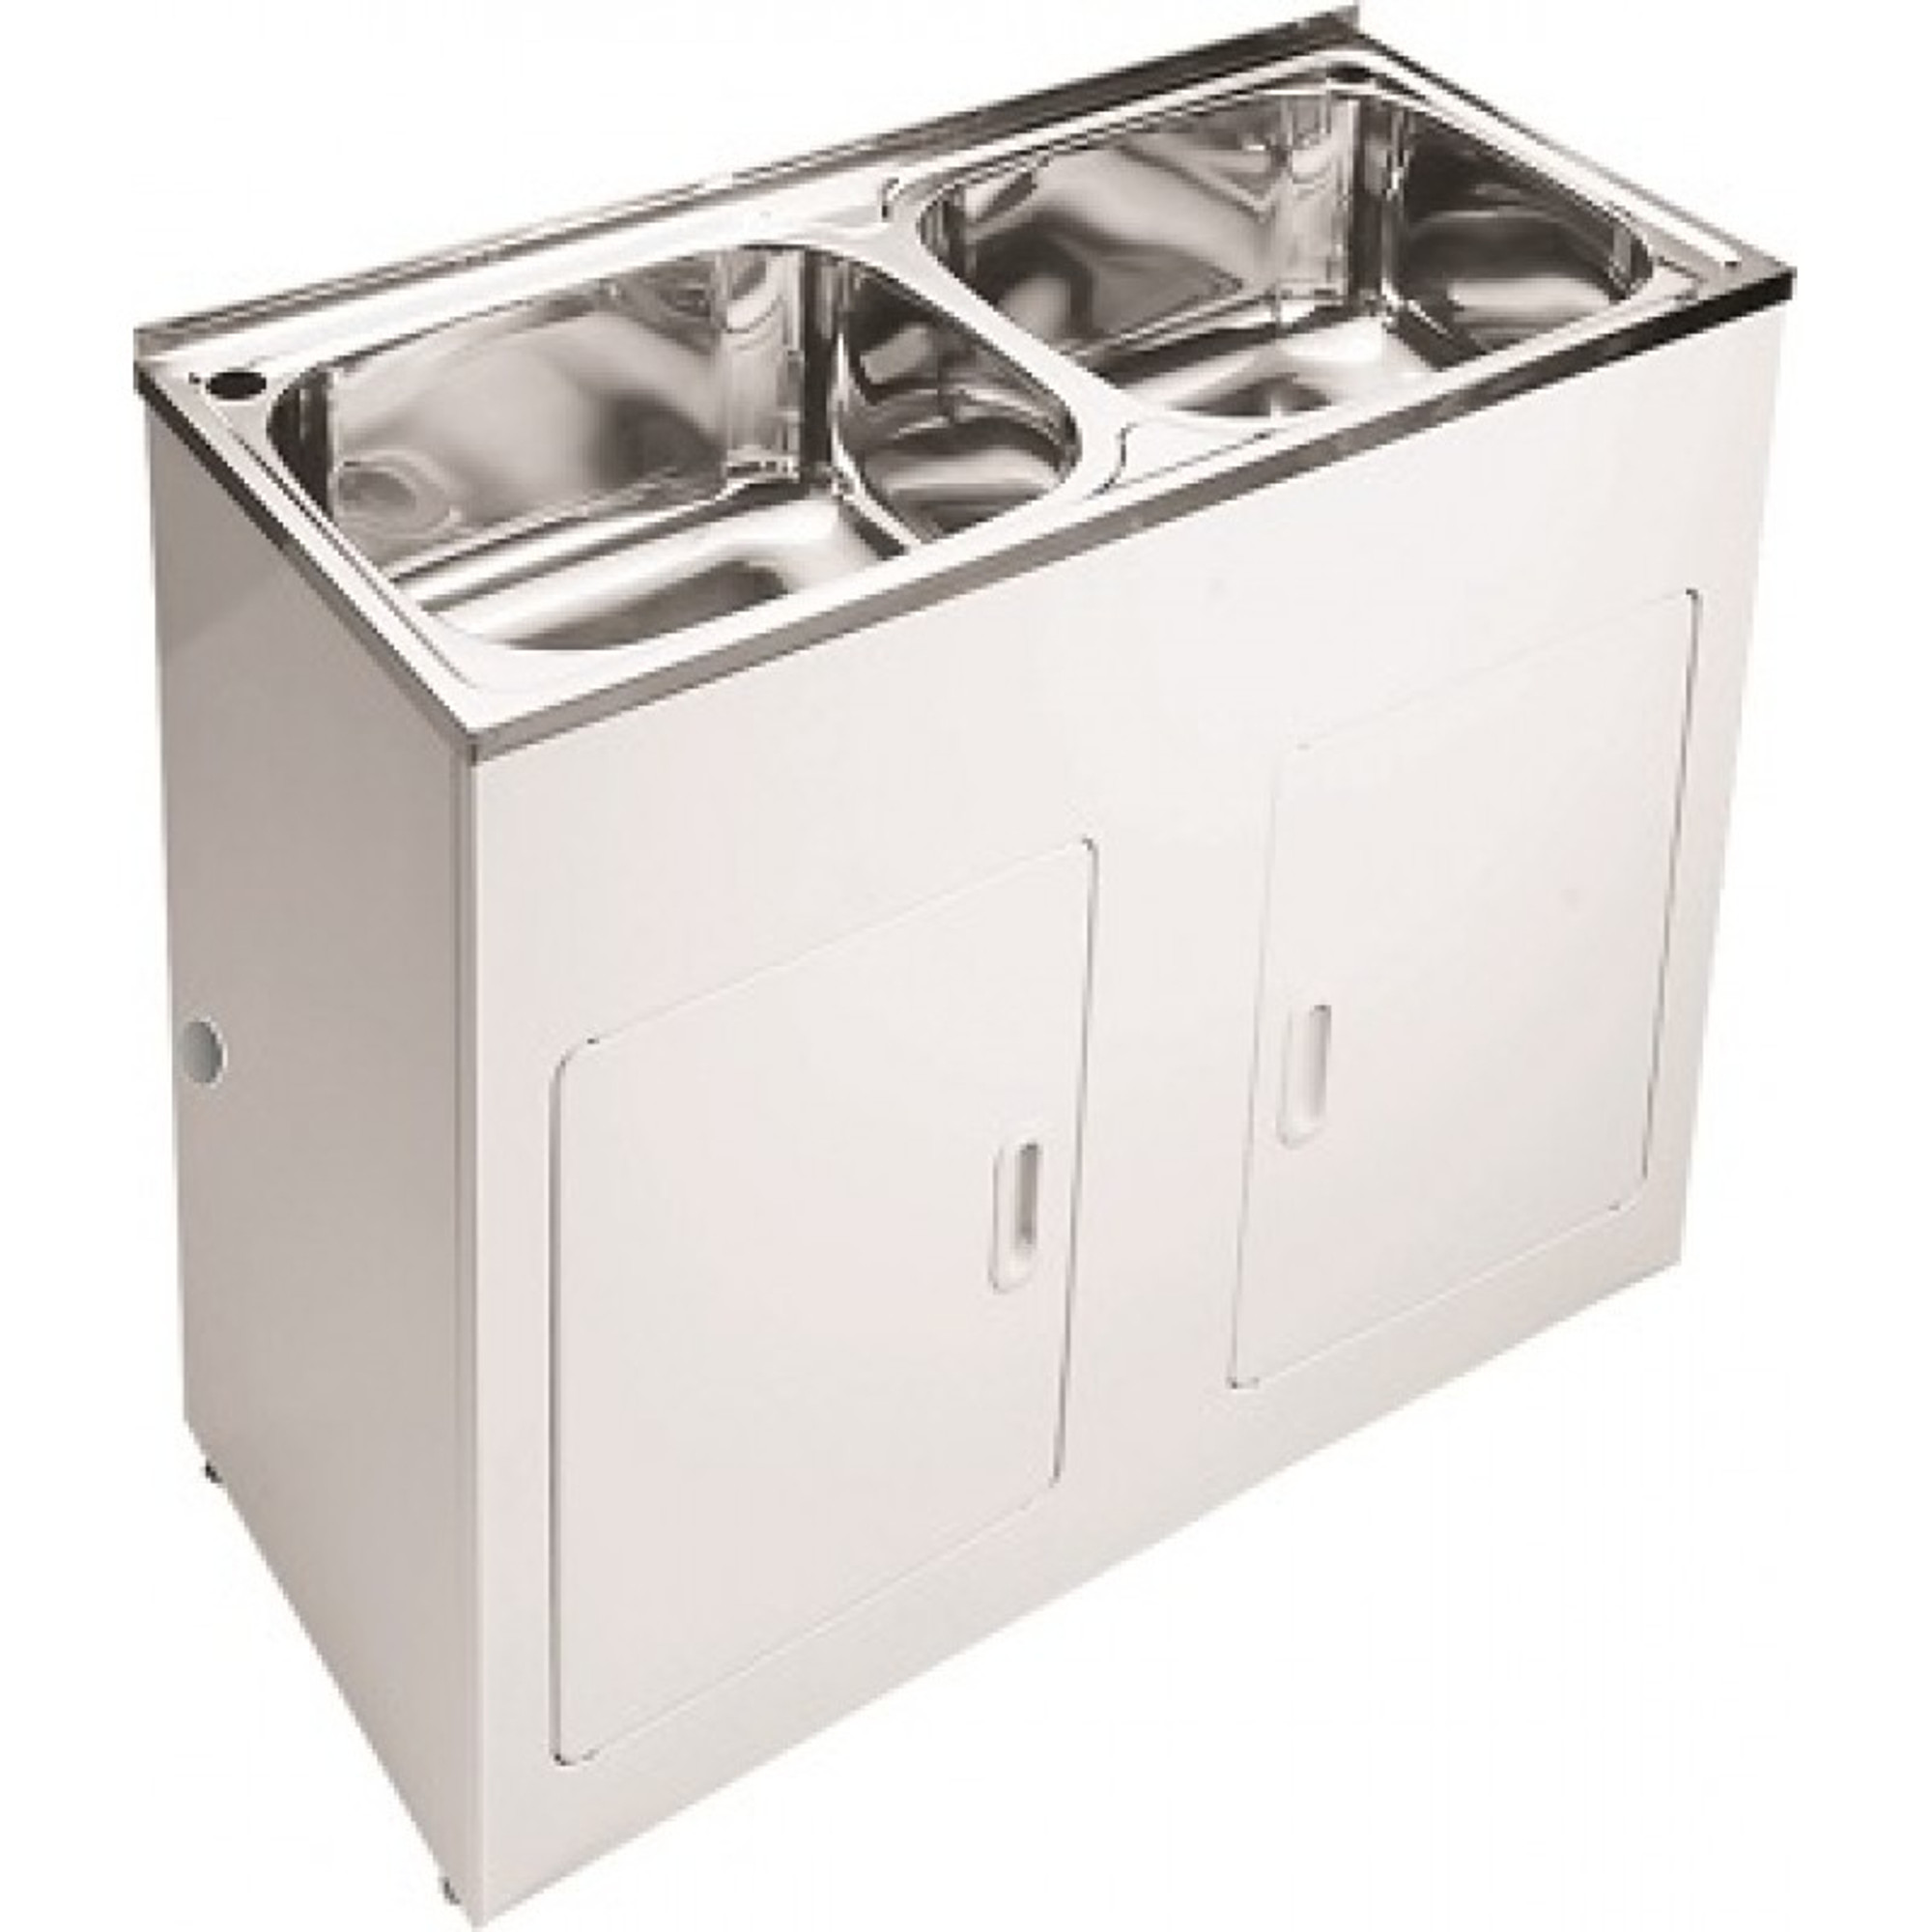 Project Double 45 Liters Laundry Sink Tub Cabinet Renovation D